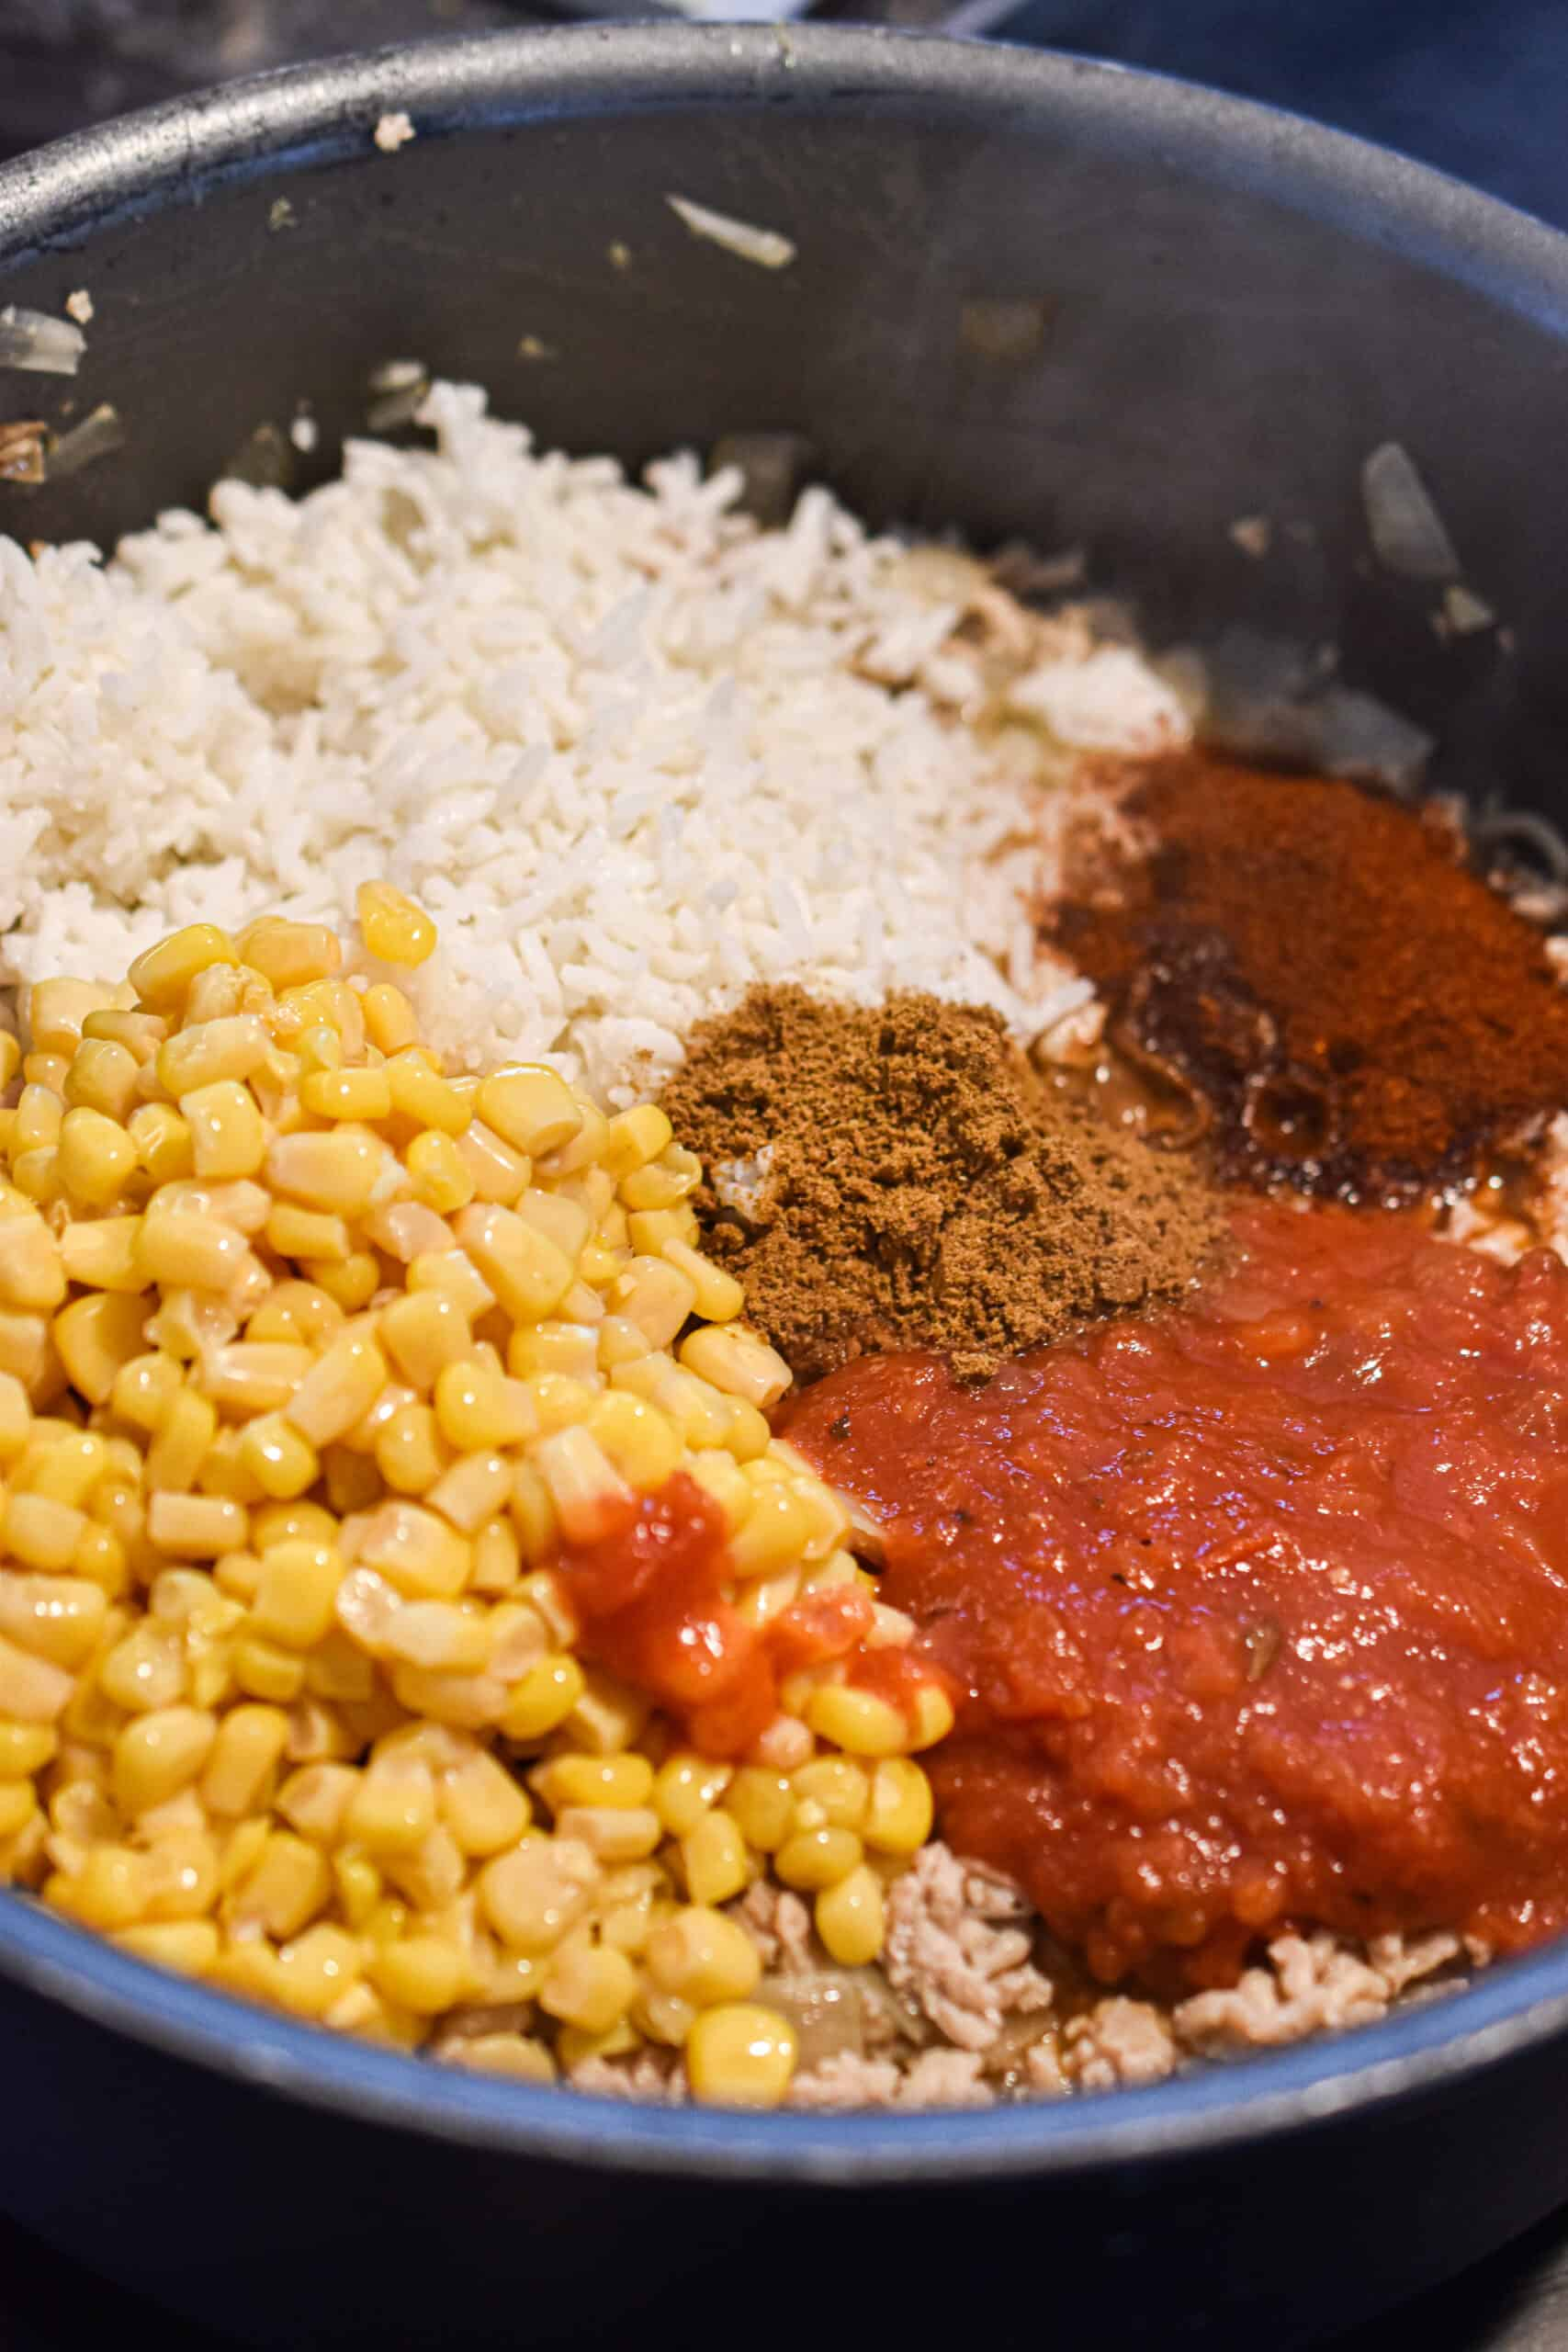 Cook the ground chicken, rice, corn, and spices together